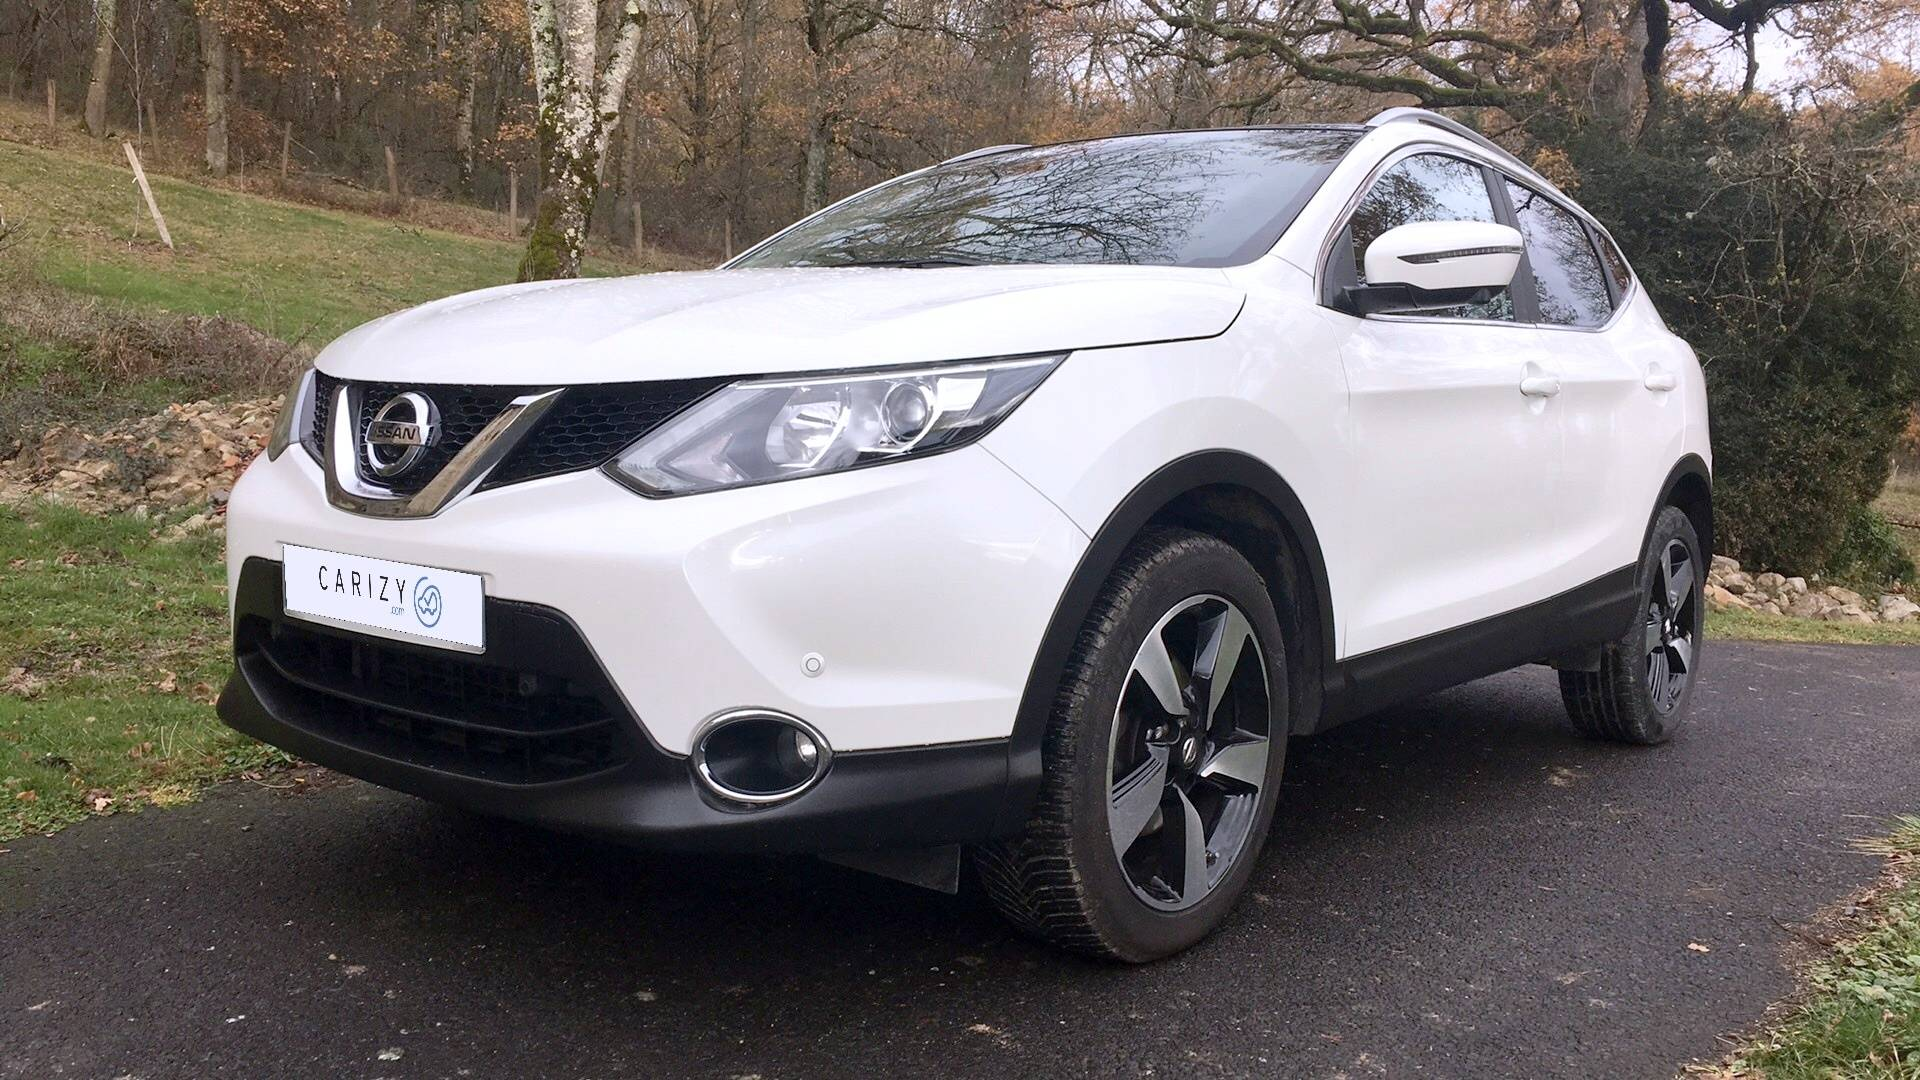 nissan qashqai d 39 occasion 1 5 dci 110 connect edition 2wd bort l 39 tang carizy. Black Bedroom Furniture Sets. Home Design Ideas